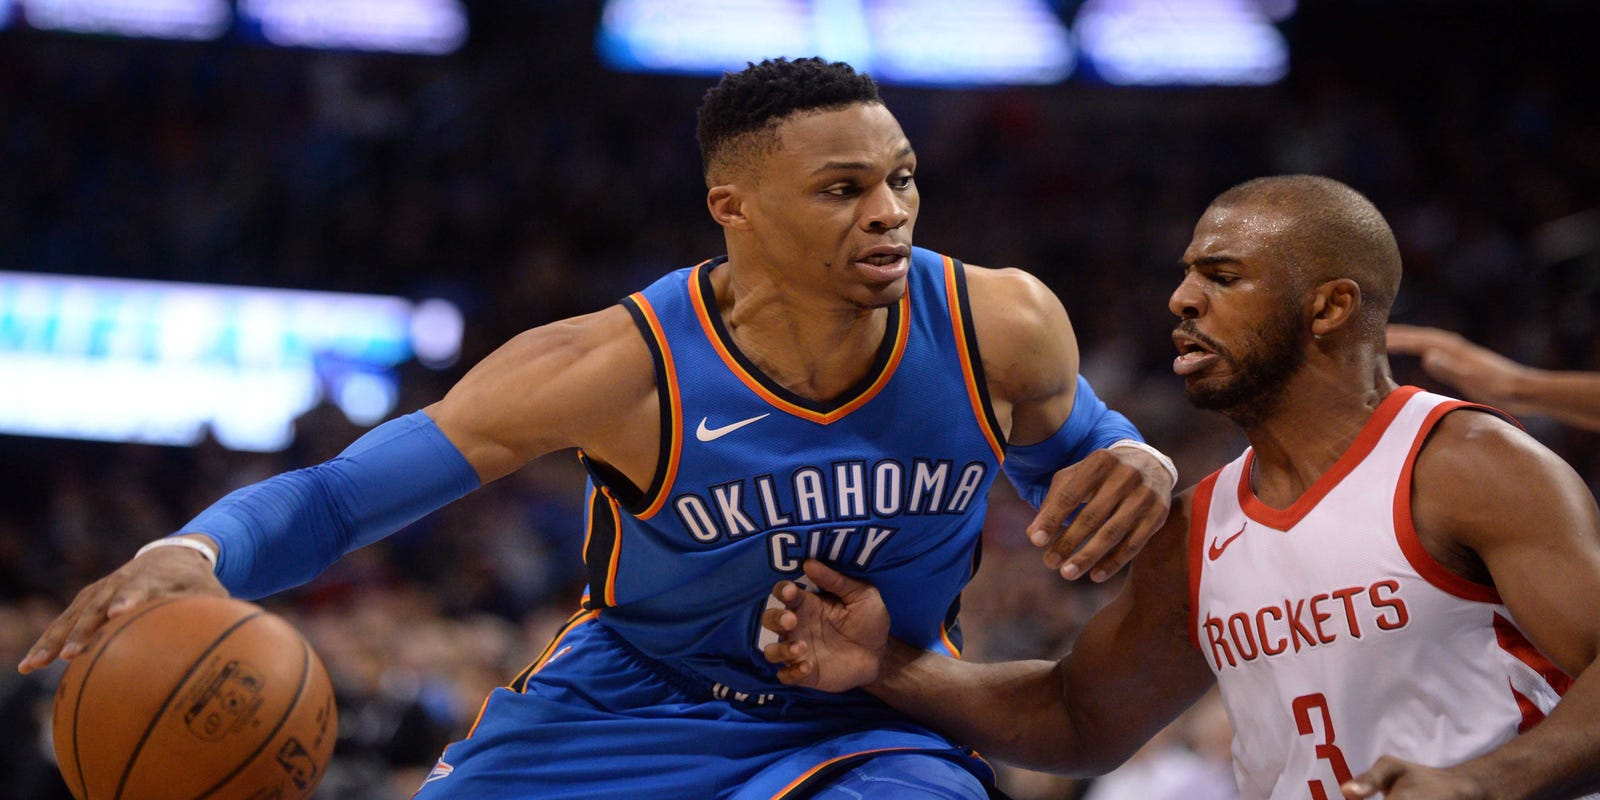 reputable site 6411b 201bd NBA: Thunder's Russell Westbrook traded to Rockets for Chris ...